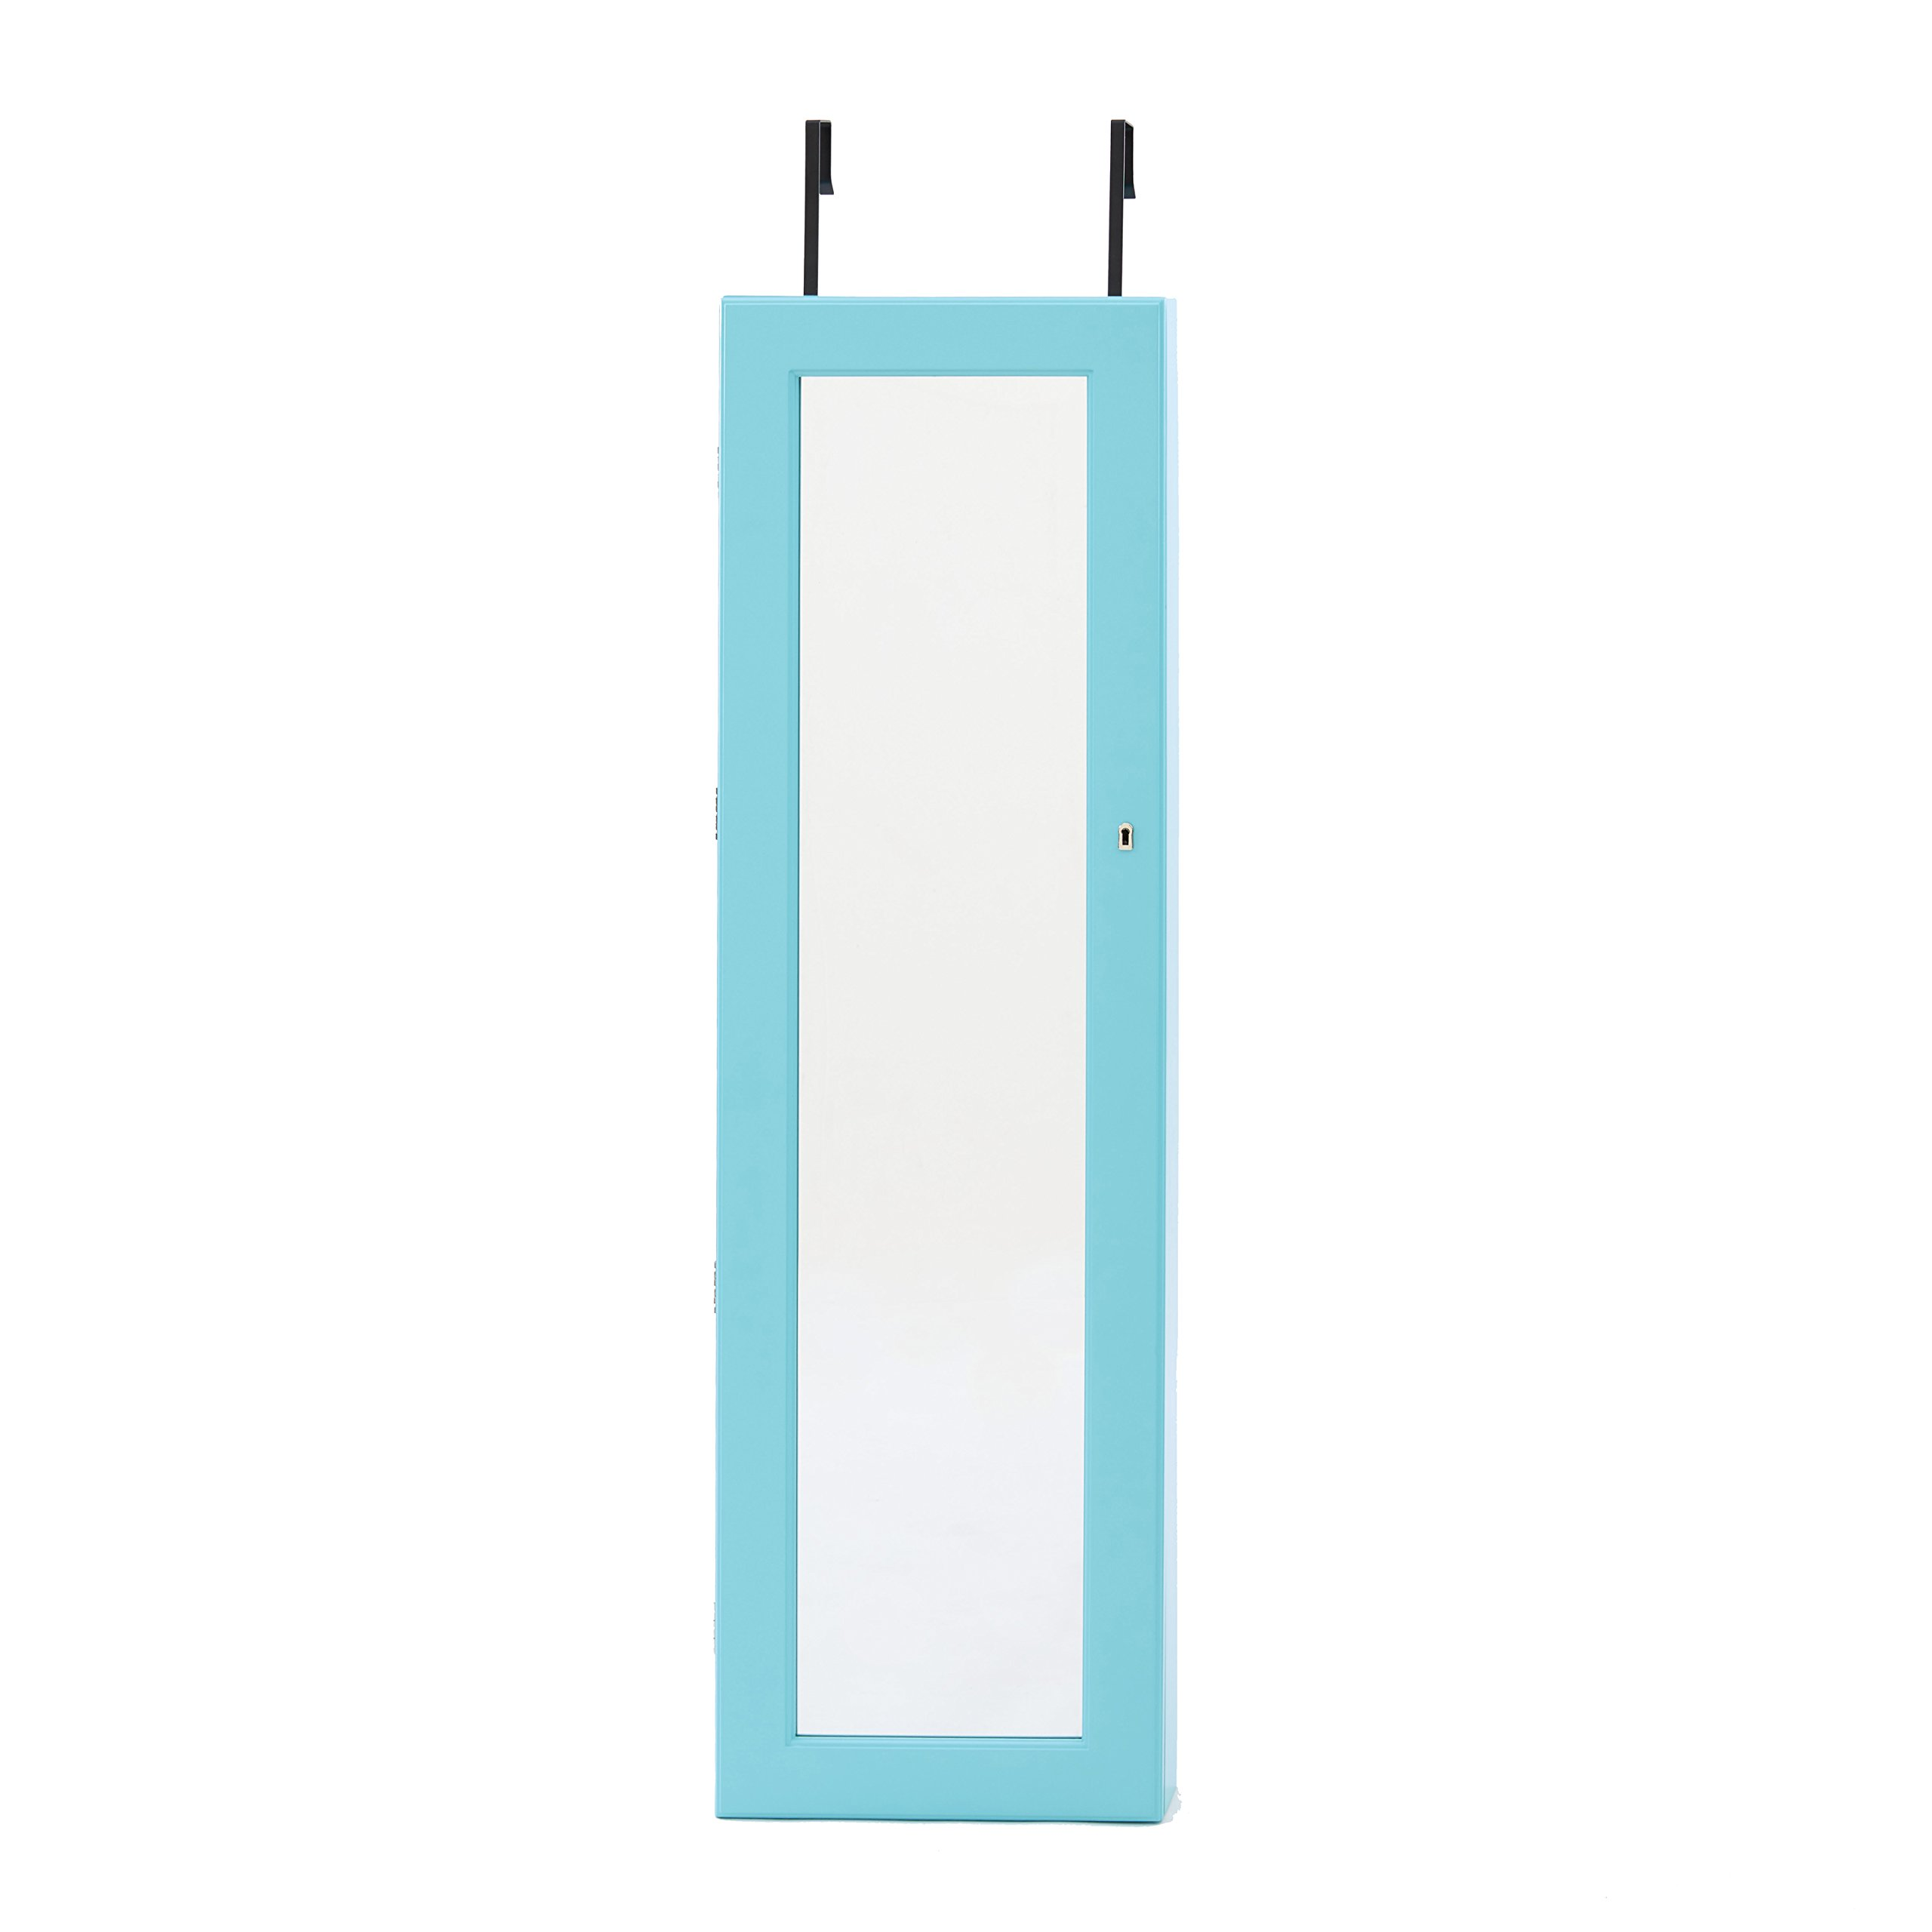 InnerSpace Luxury Products Deluxe Mirrored Jewelry Armoire, Turquoise